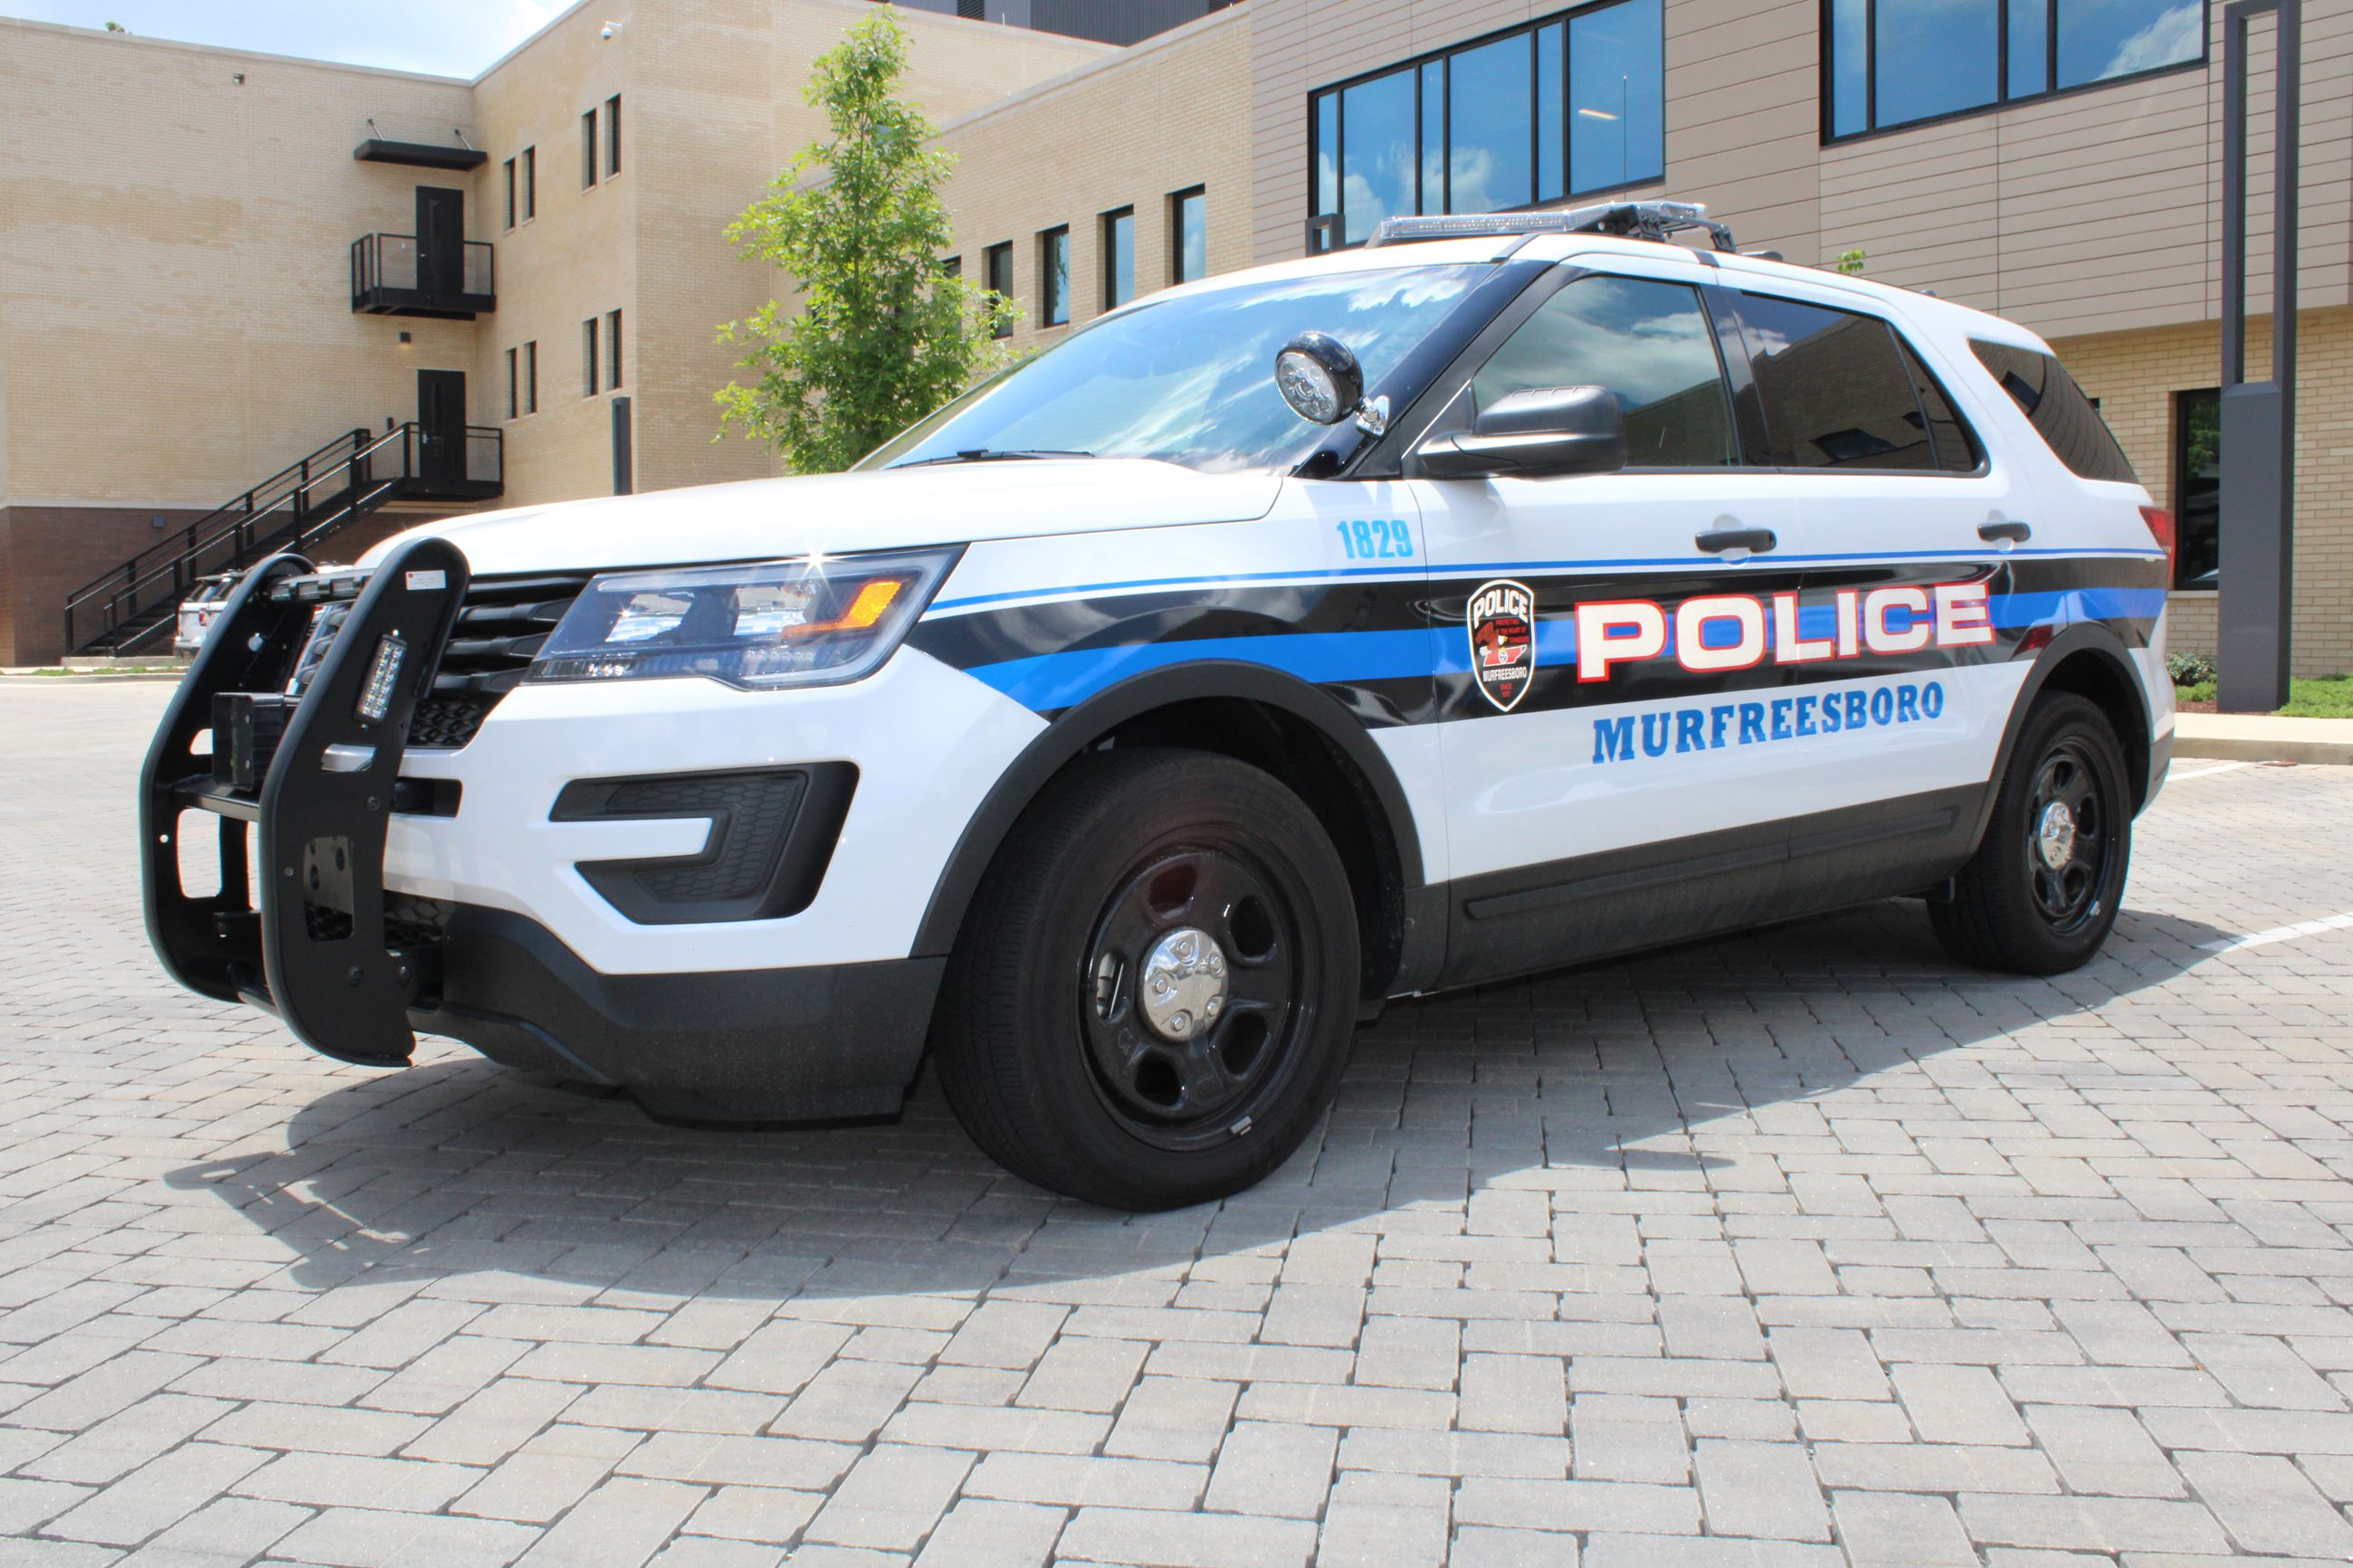 The Murfreesboro Police Department is routinely in need of new officers to patrol the community as the city continues to grow. Chief Michael Bowen told WGNS...